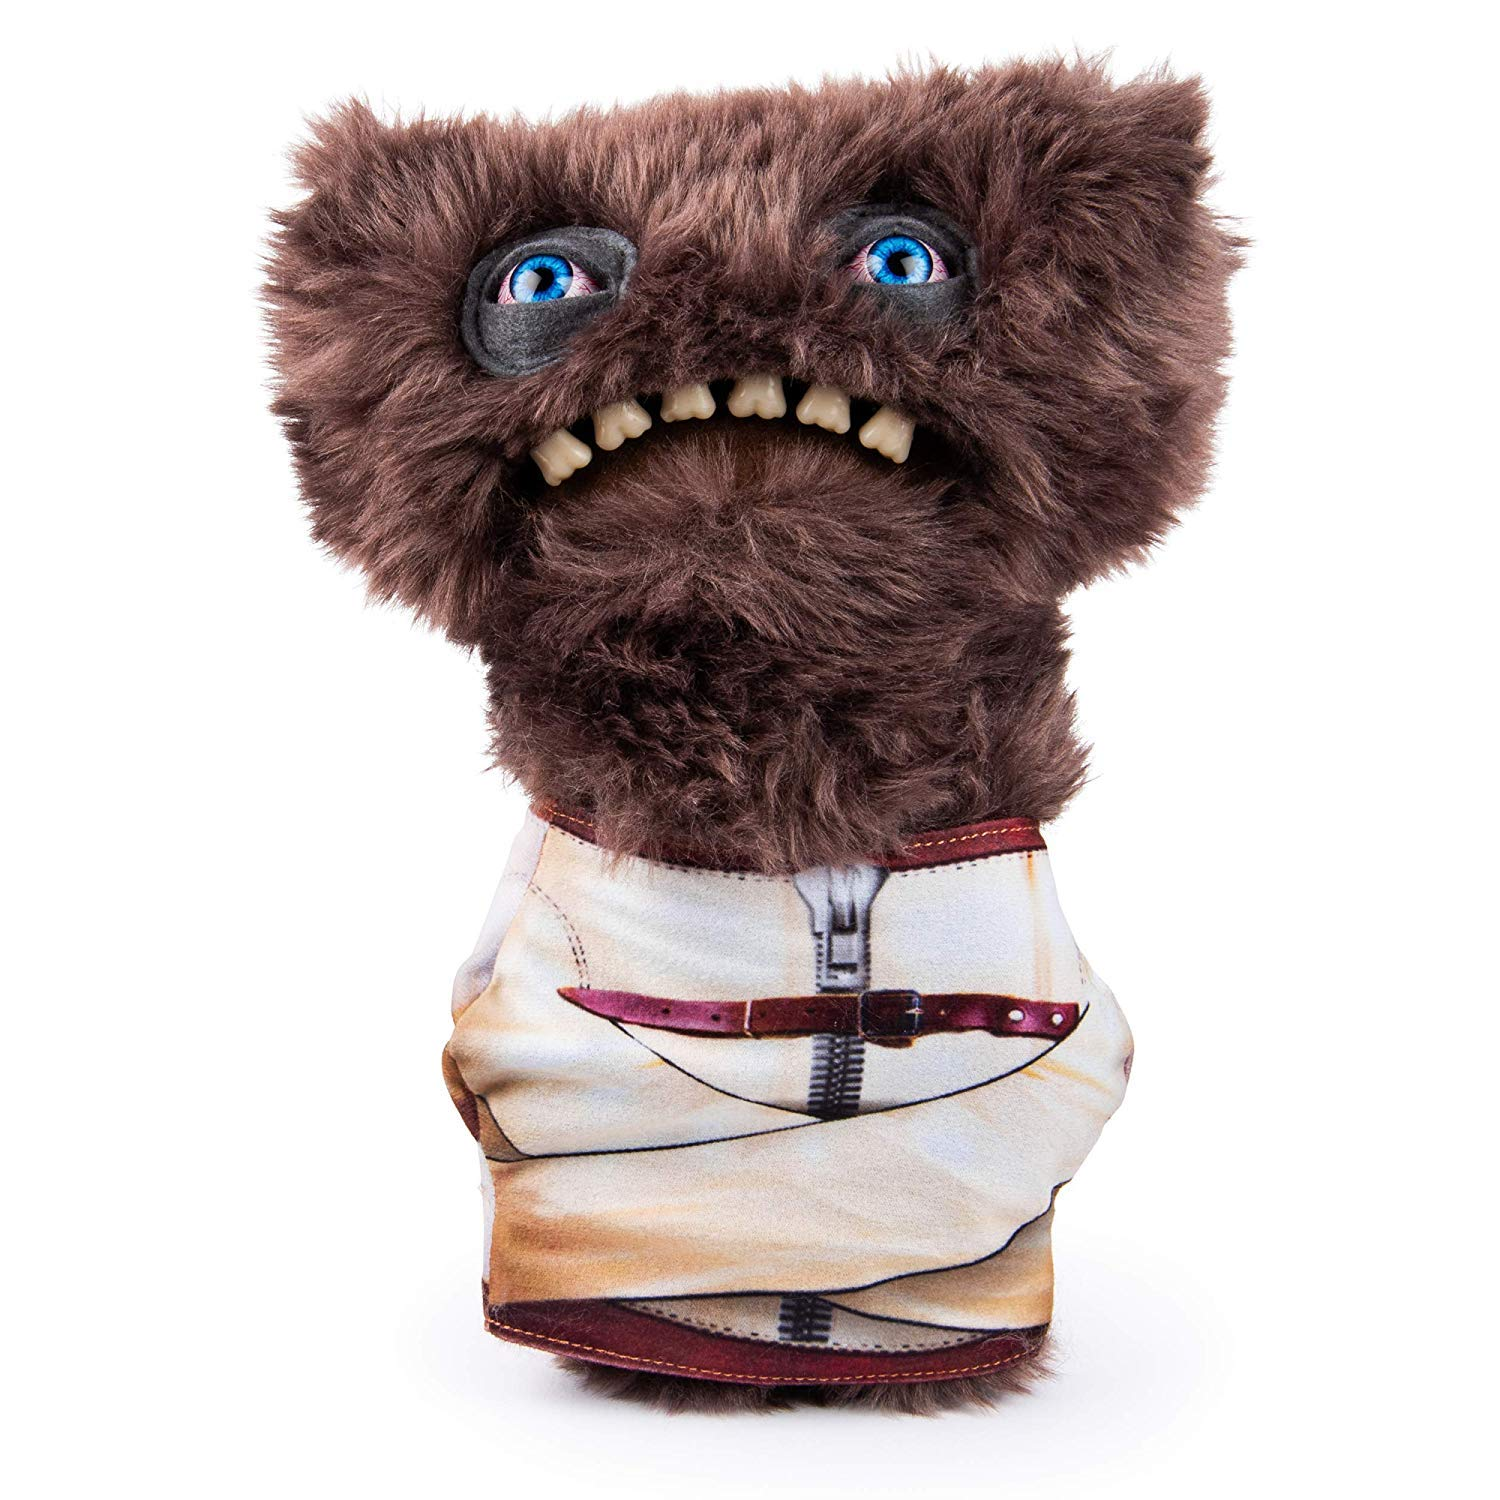 Fugglers, Funny Ugly Monster, 9 Inch Gnawing Terror (Brown) Plush Creature with Teeth, for Ages 4 and Up by Fugglers